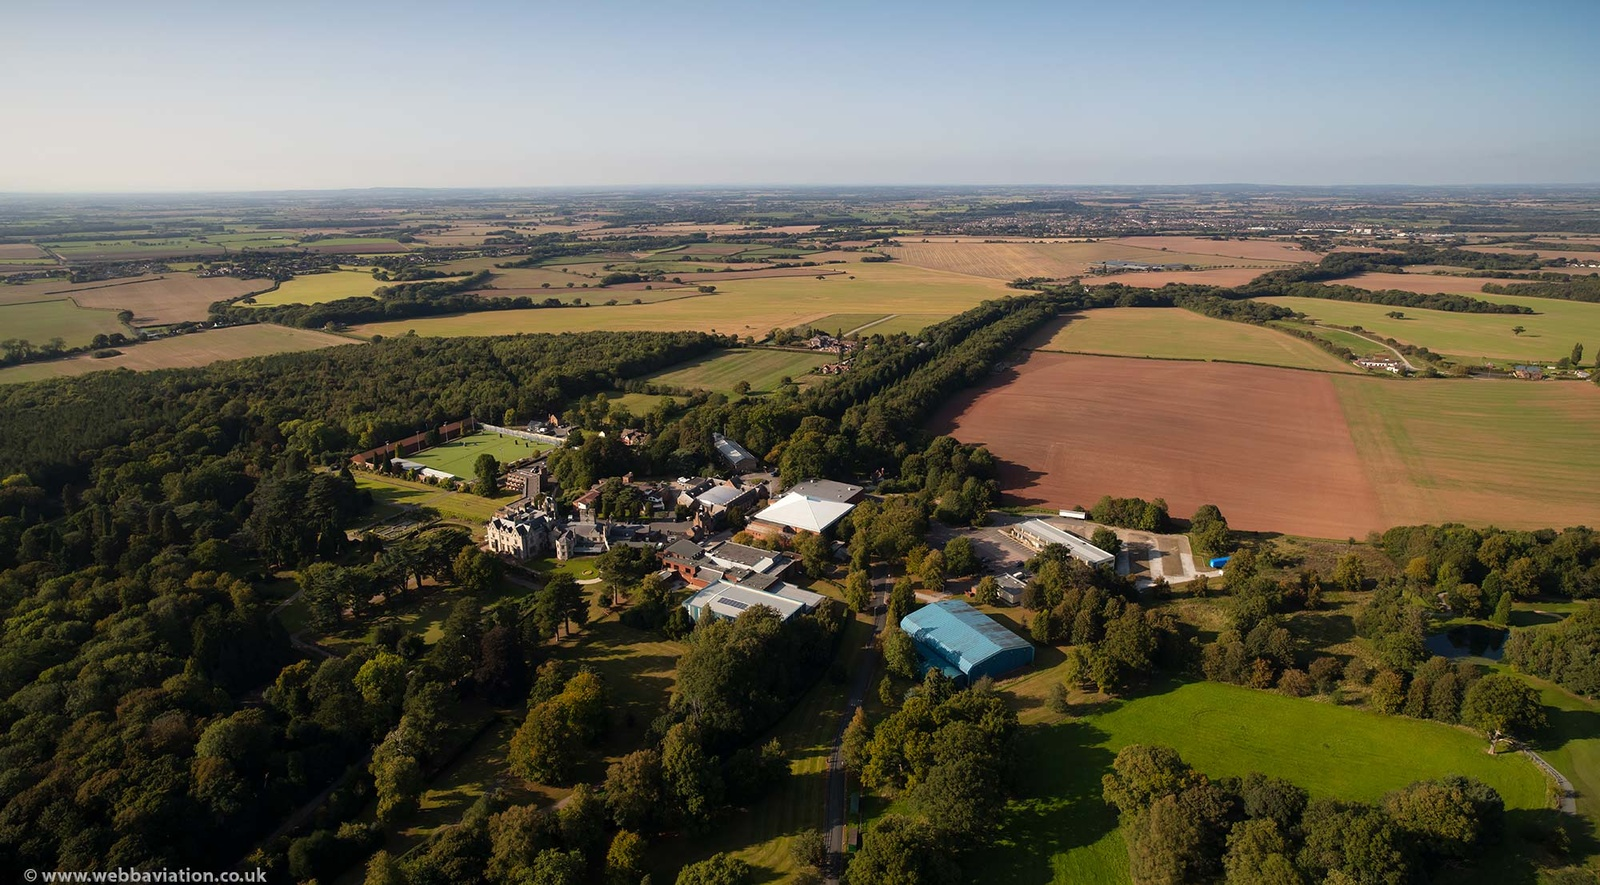 Lilleshall Hall National Sports Centre from the air